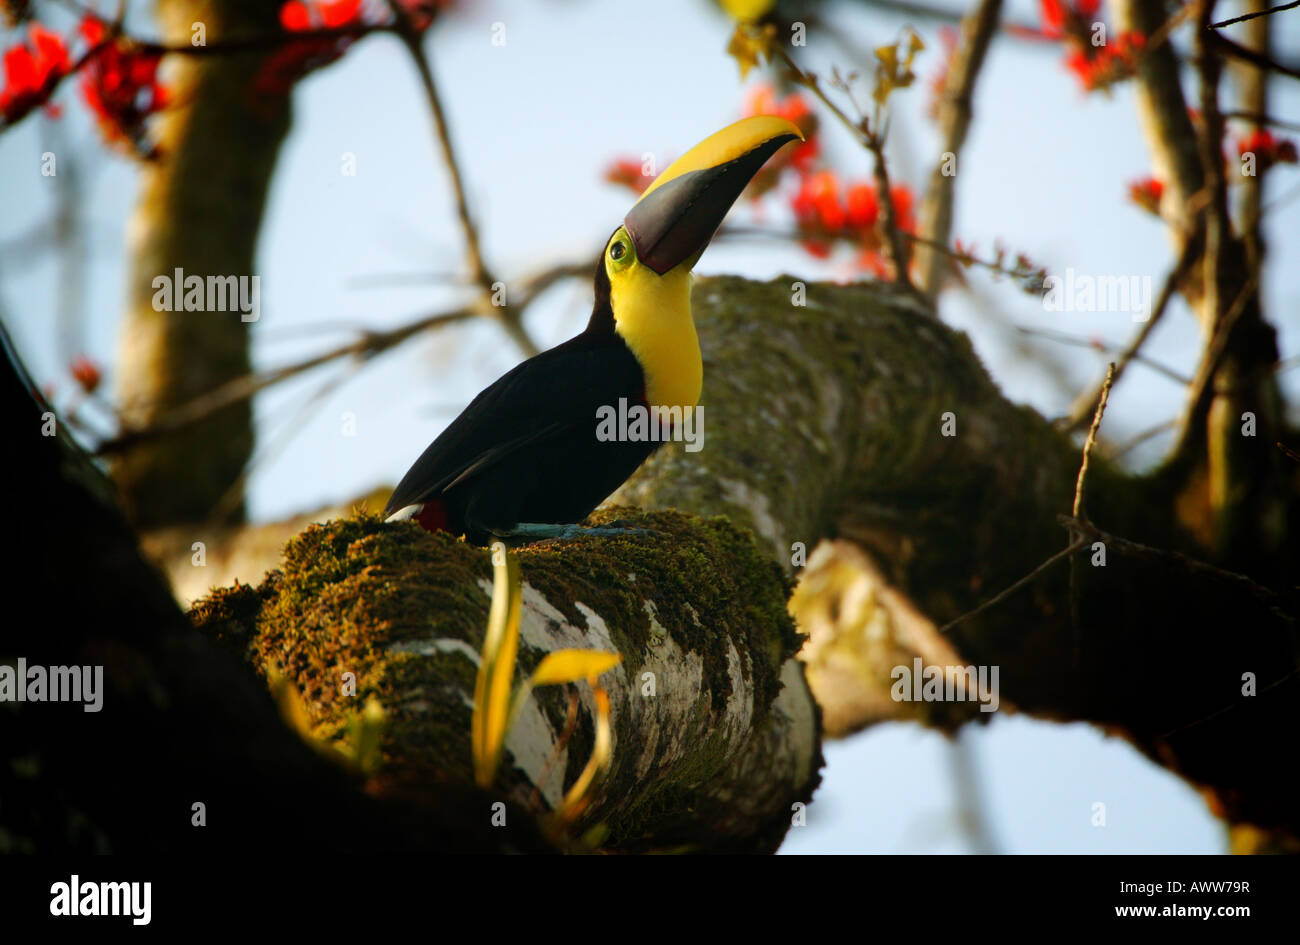 Chestnut-mandibled toucan near Cana field station in Darien national park, Republic of Panama - Stock Image